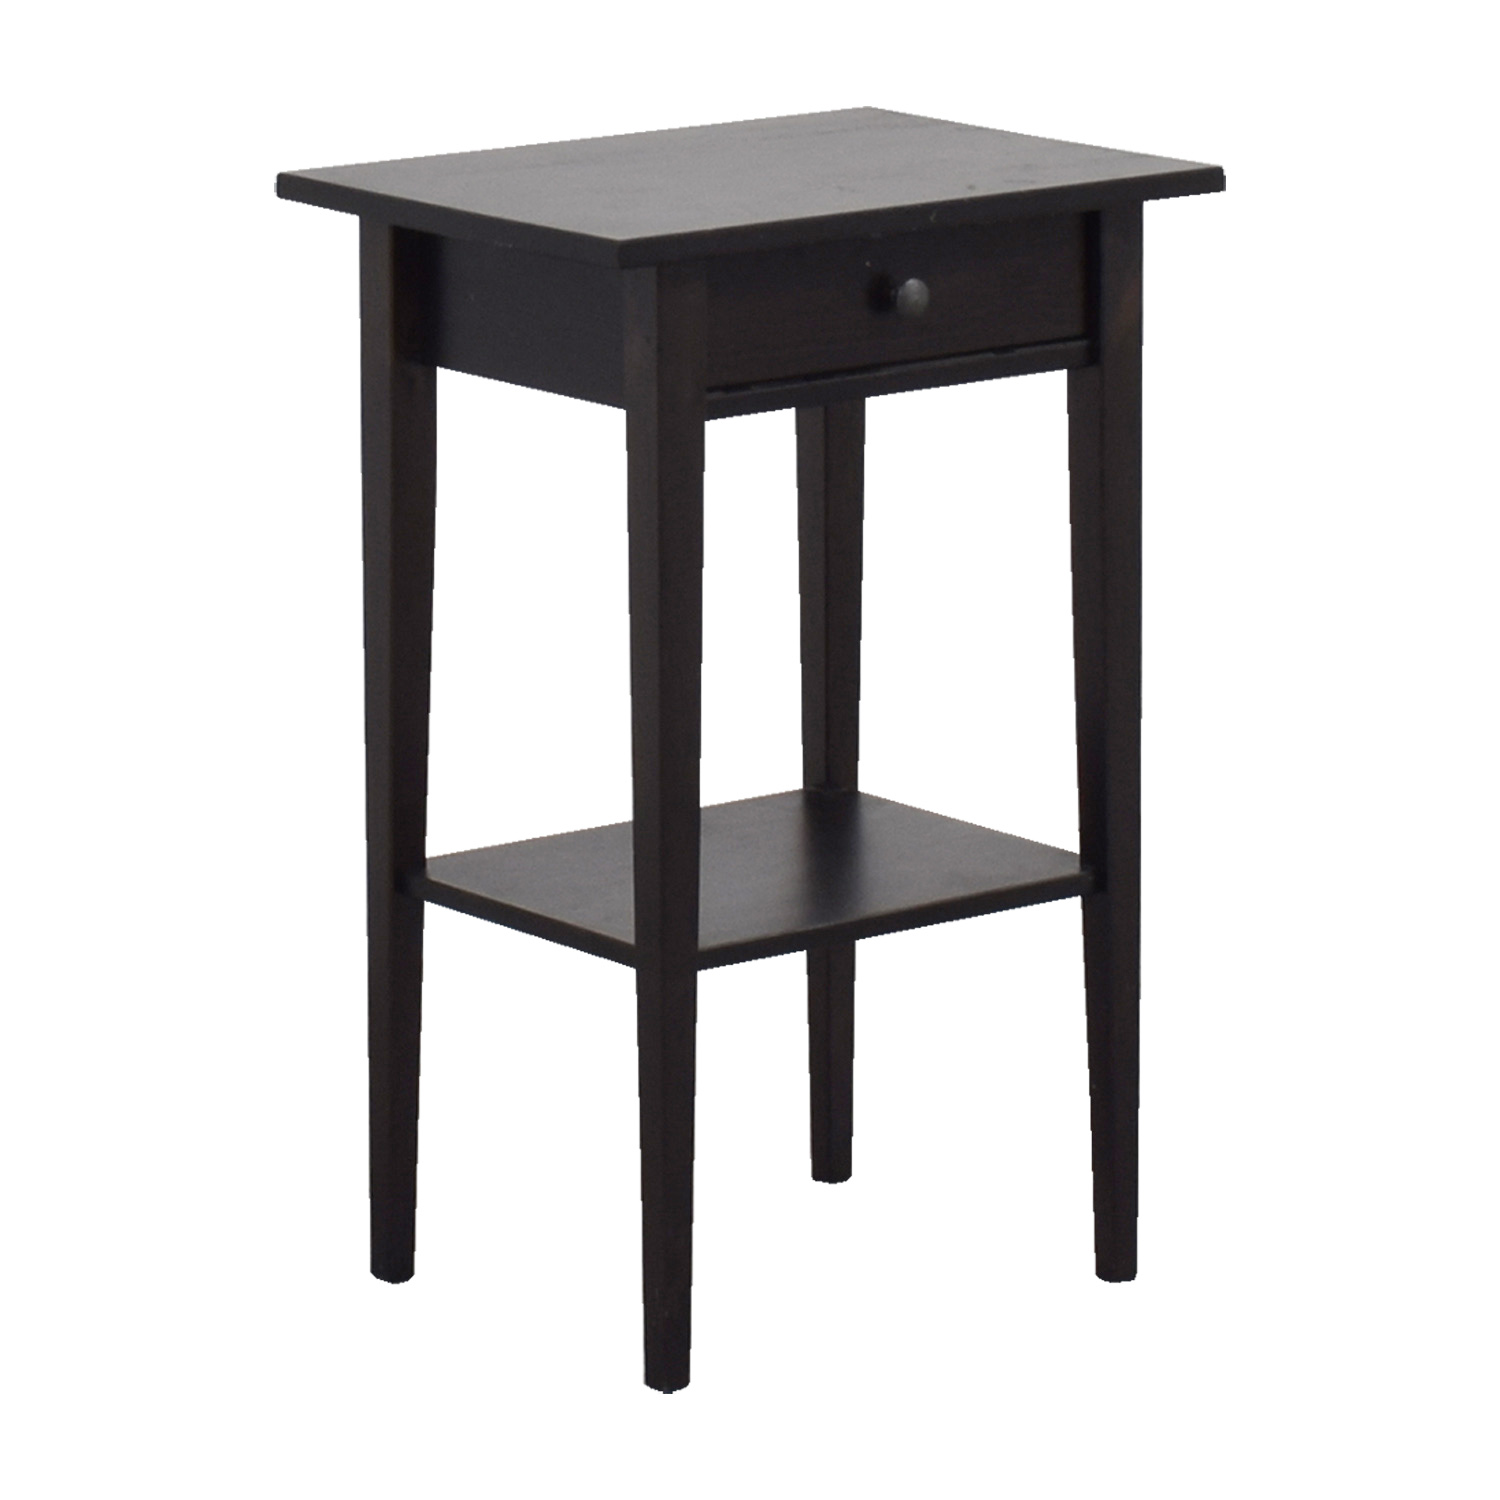 80 off ikea ikea single drawer end table tables for Ikea end tables salon